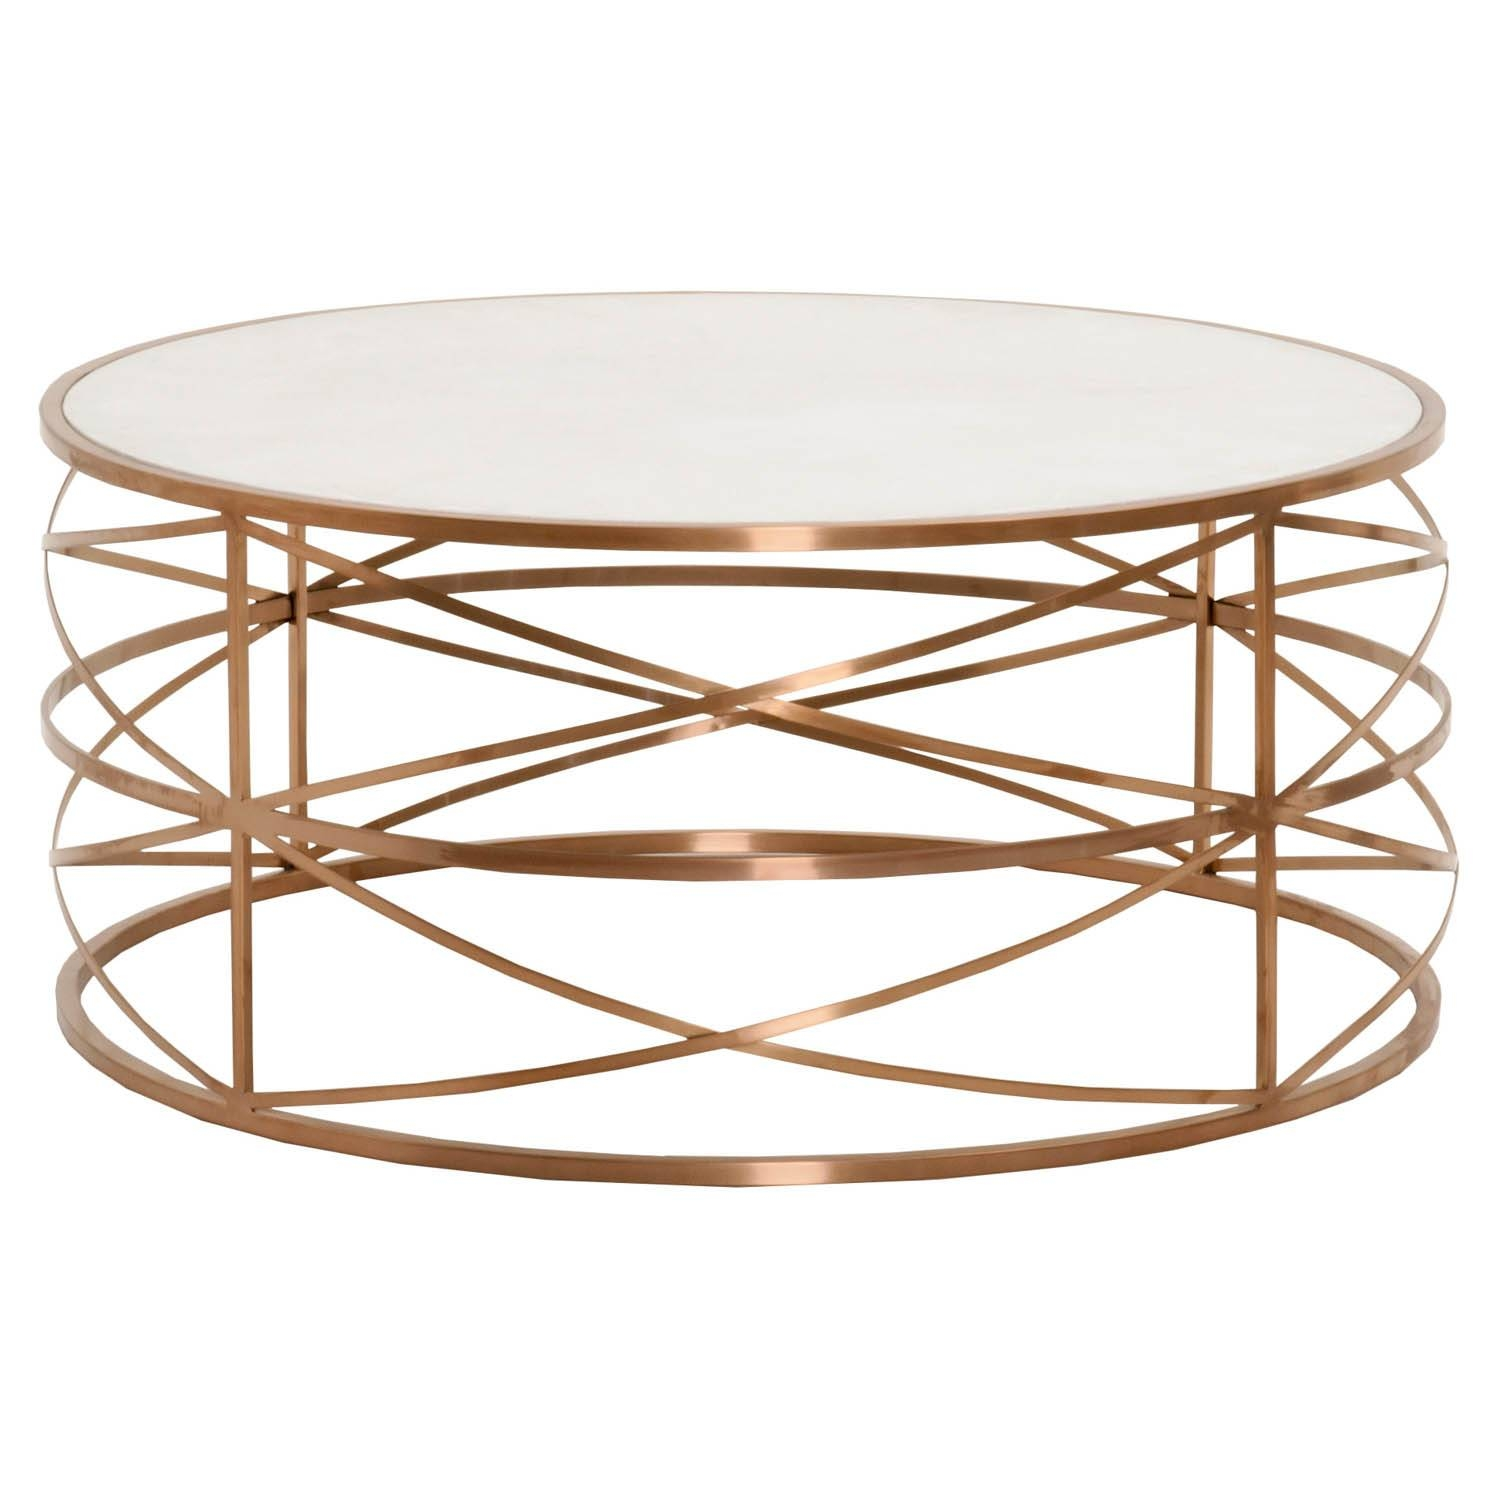 15 Collection of Gold Round Coffee Table